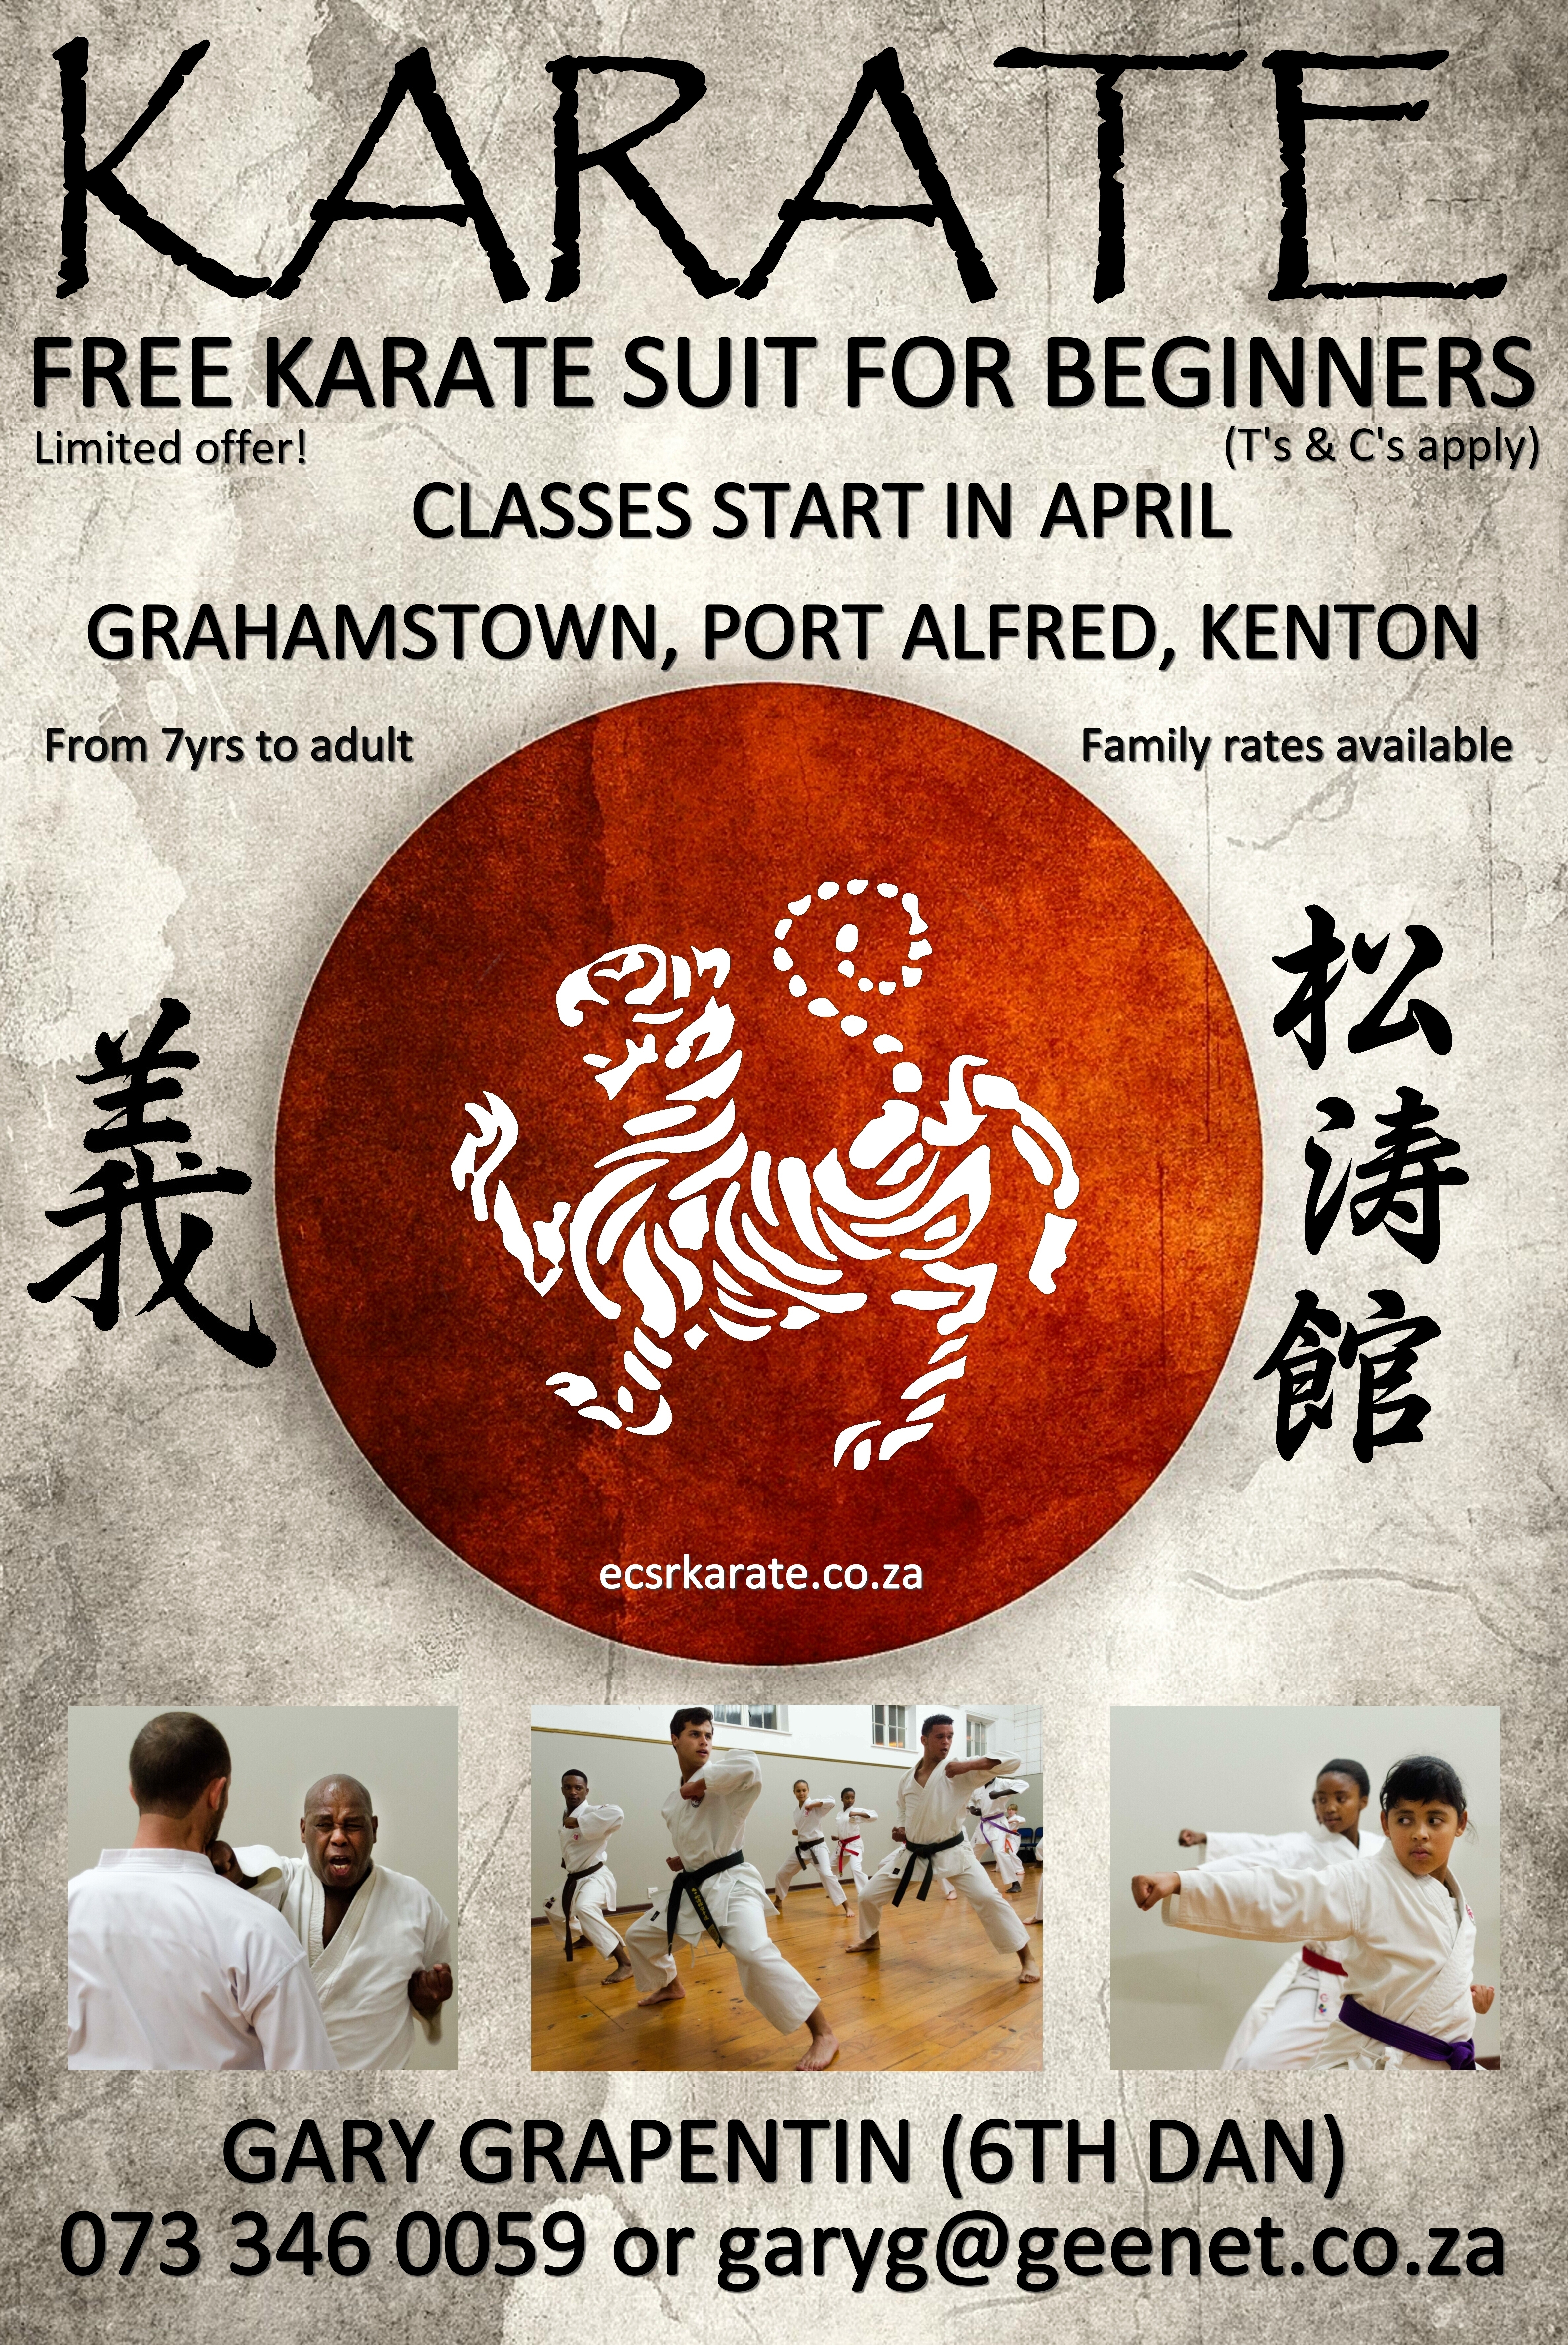 2018 Grahamstown, Port Alfred April (include for Ghstwn, PA and Kenton dojos)